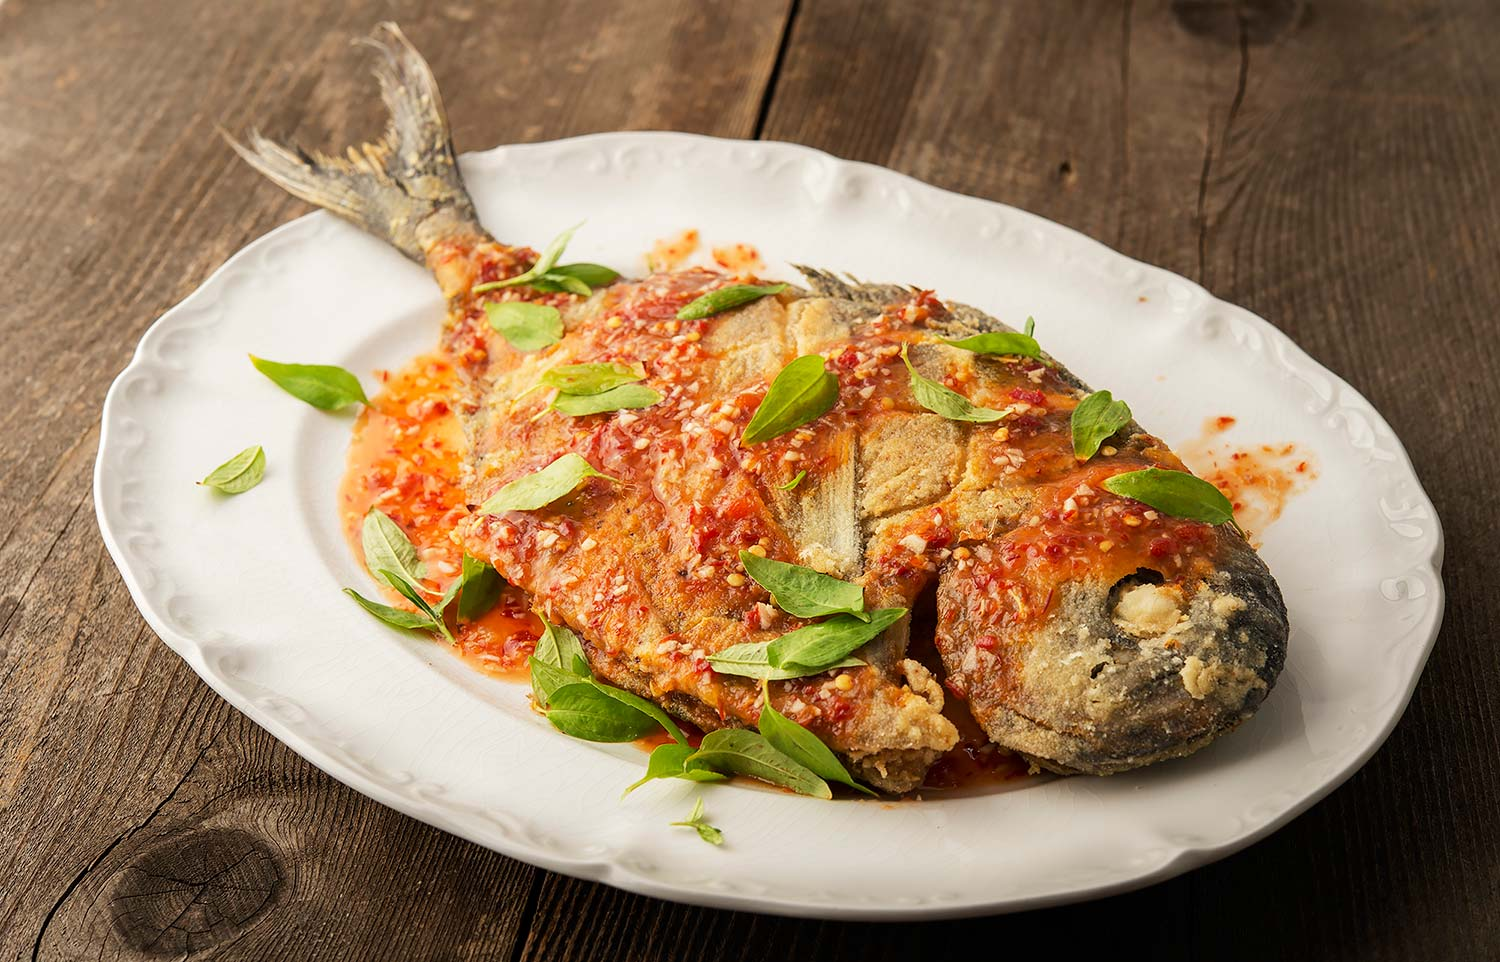 Thai fried pomfret fish with chile sauce on a platter.